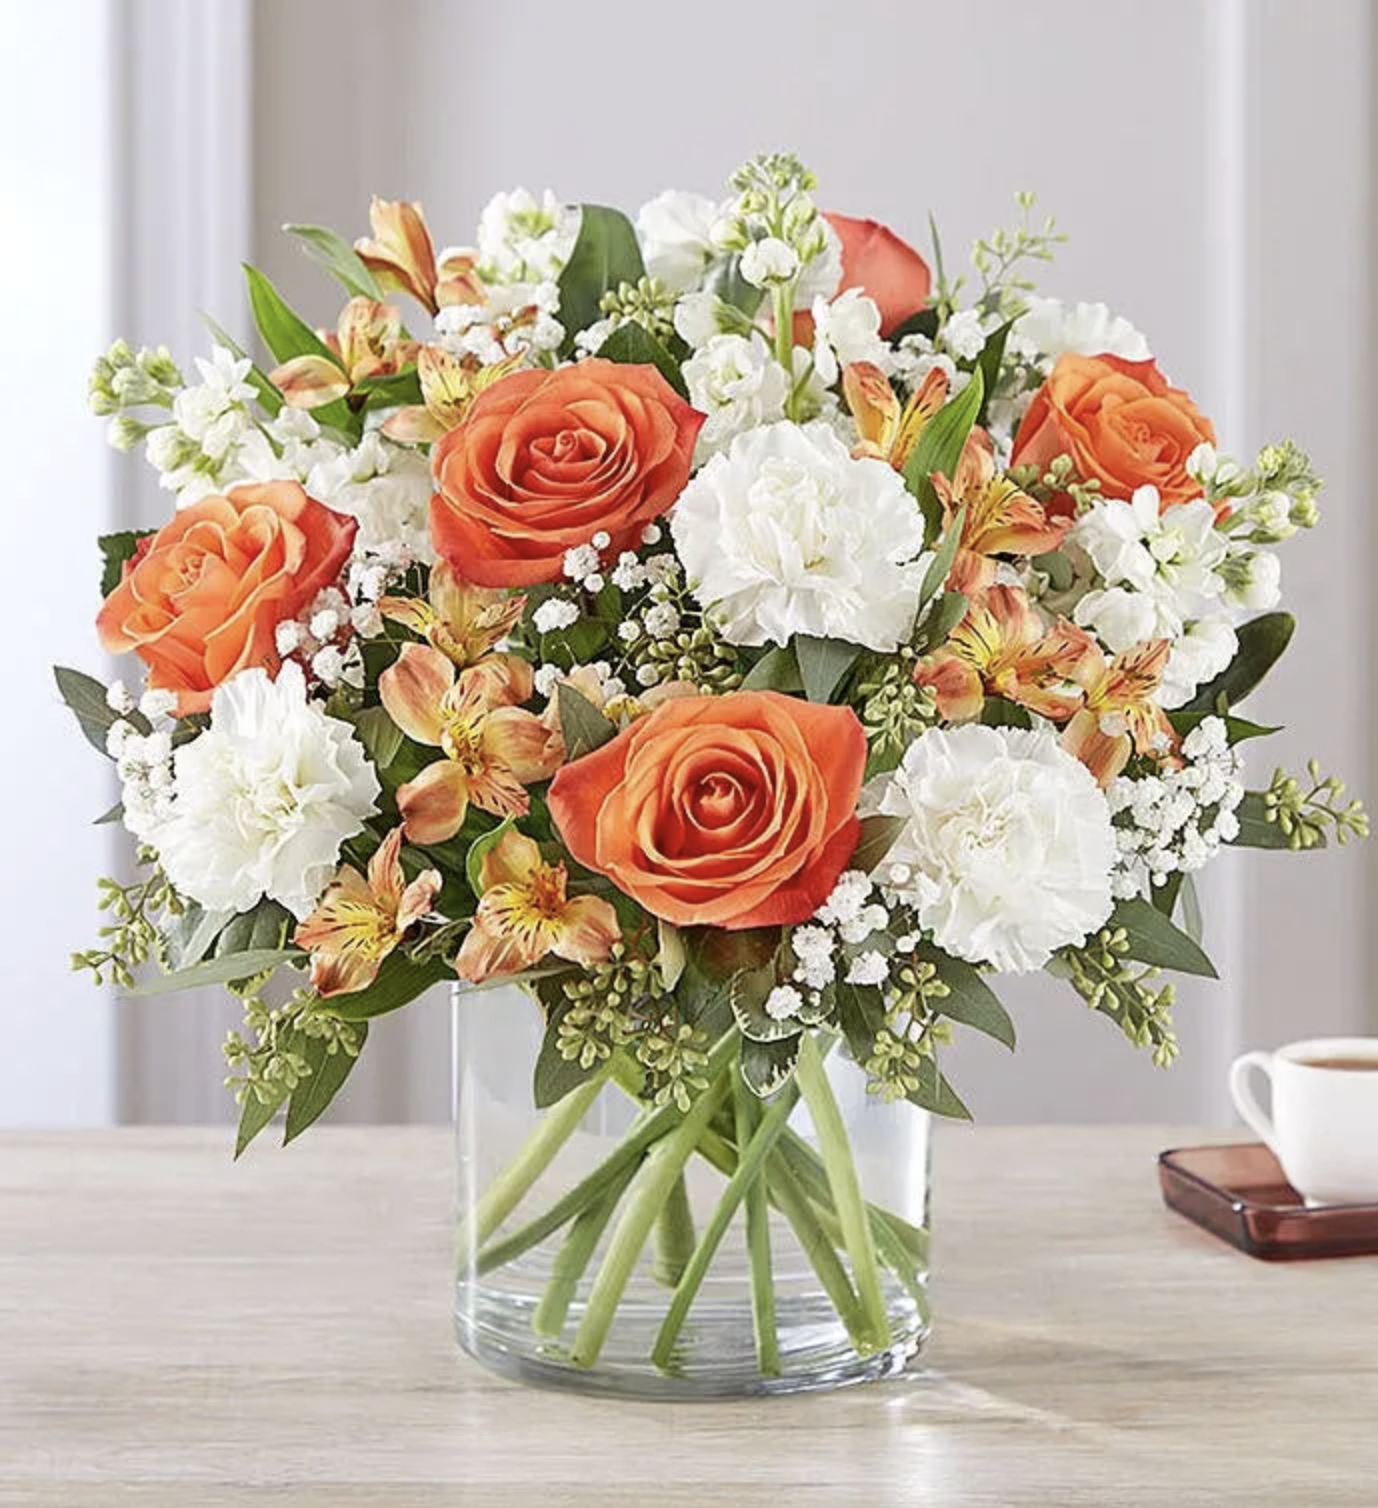 Best Mother S Day Flower Delivery Services Beautiful Bouquets To Send On Mother S Day